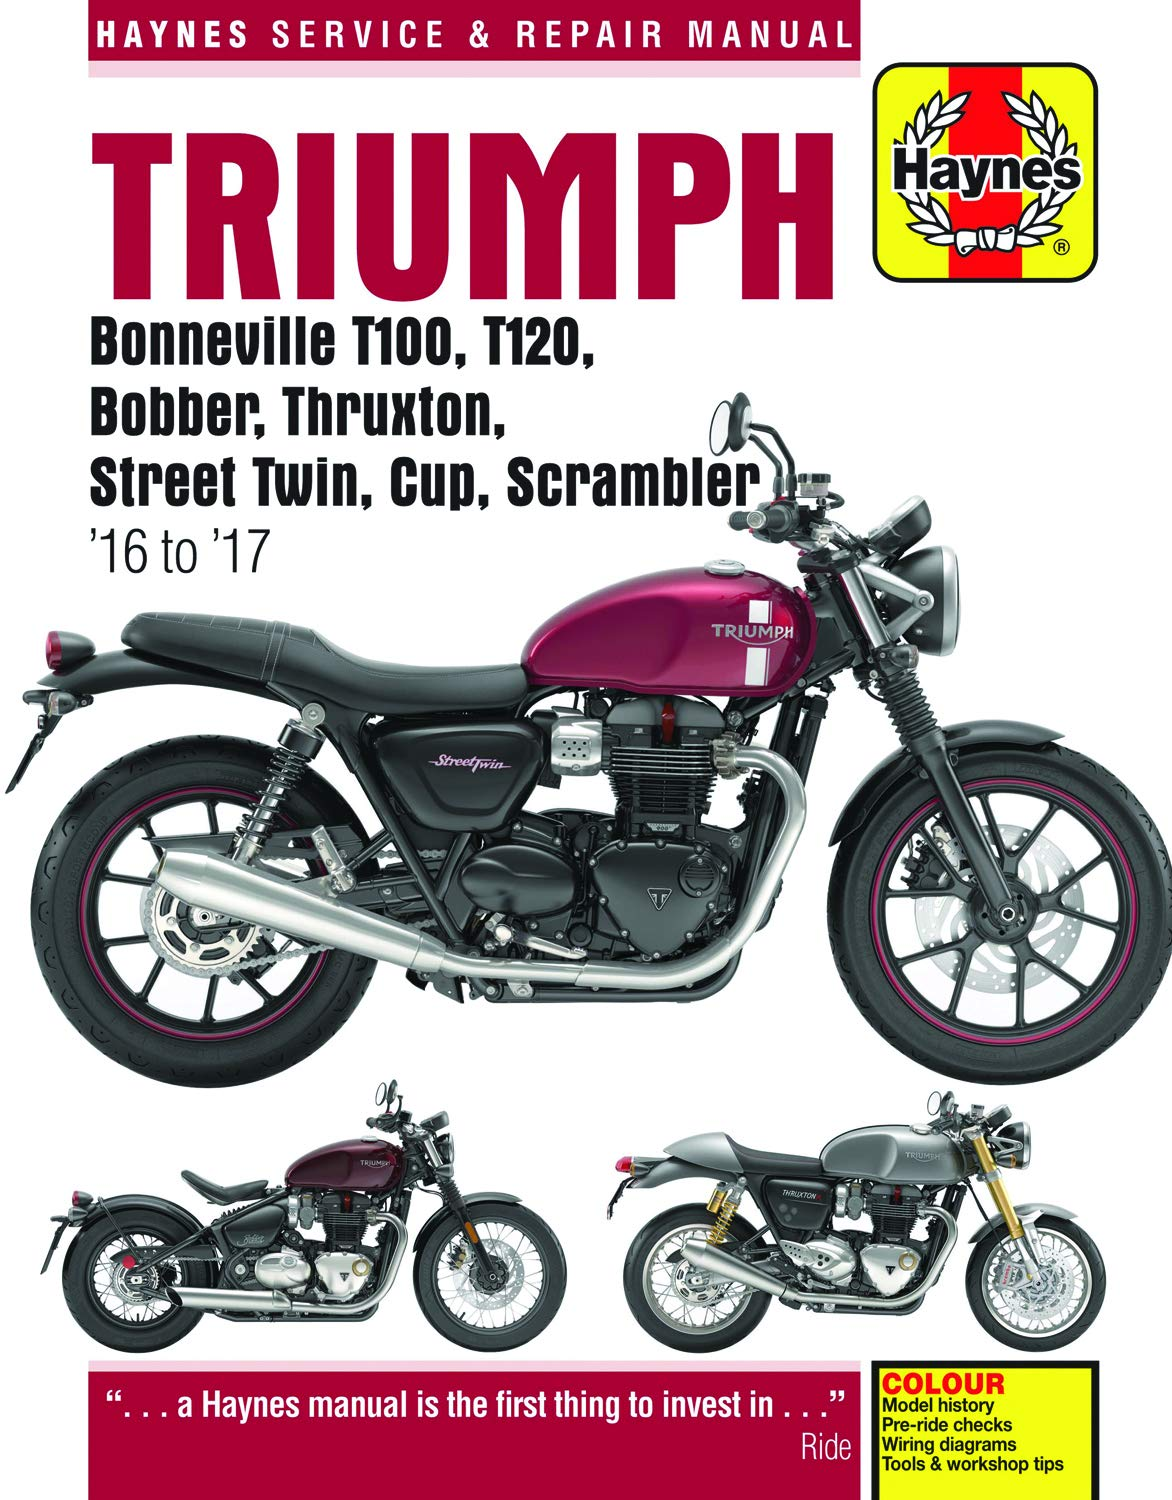 triumph bonneville t100, t120, bobber, thruxton, street twin, cup &  scrambler (2016 - 2017) haynes repair manual (haynes powersport) paperback  – may 1, 2018